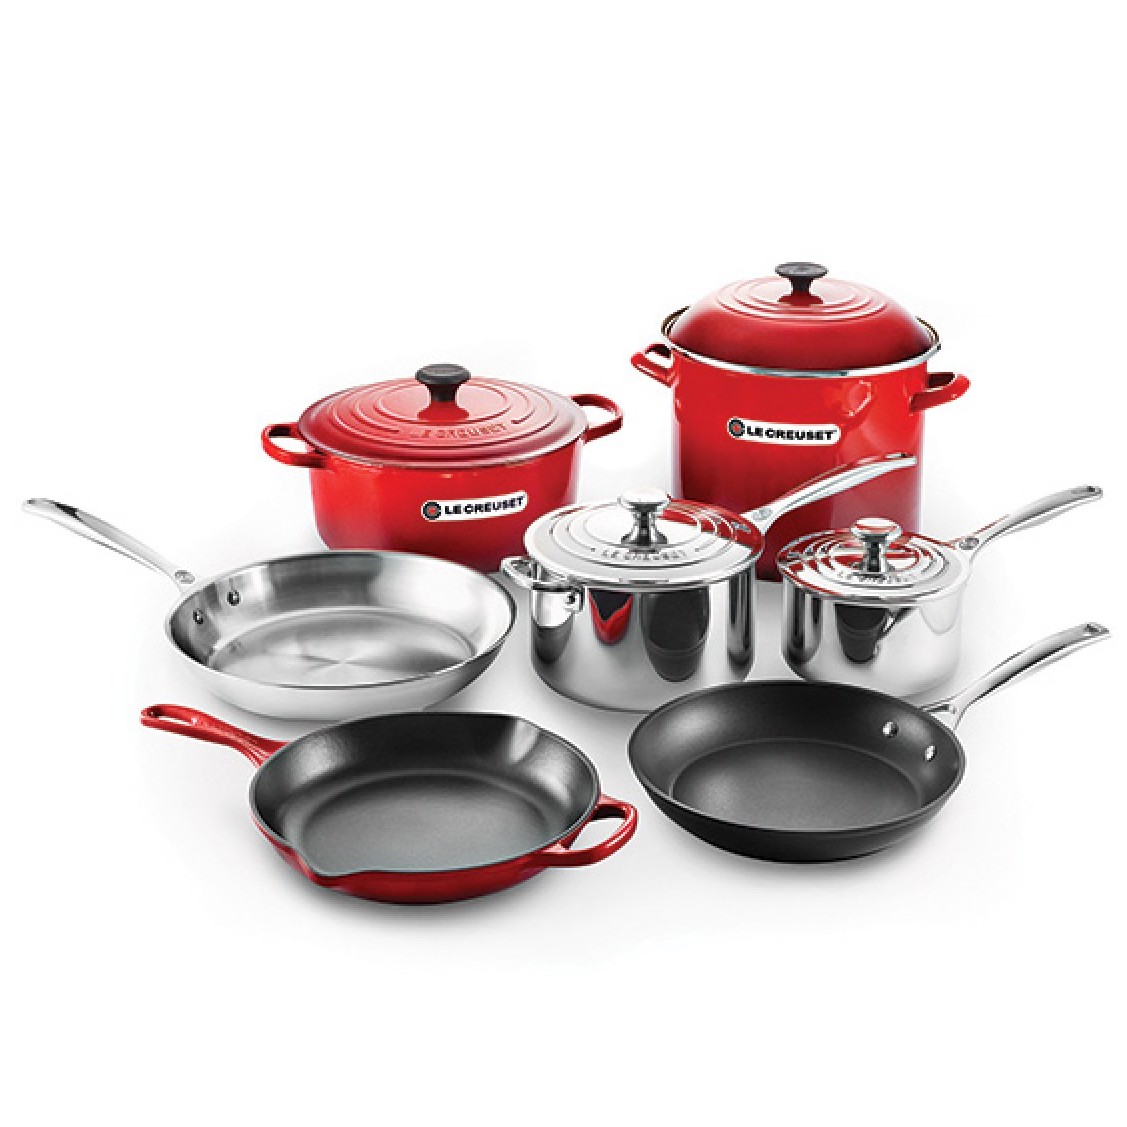 Le Creuset 11pc Ultimate Cookware Set | Cerise